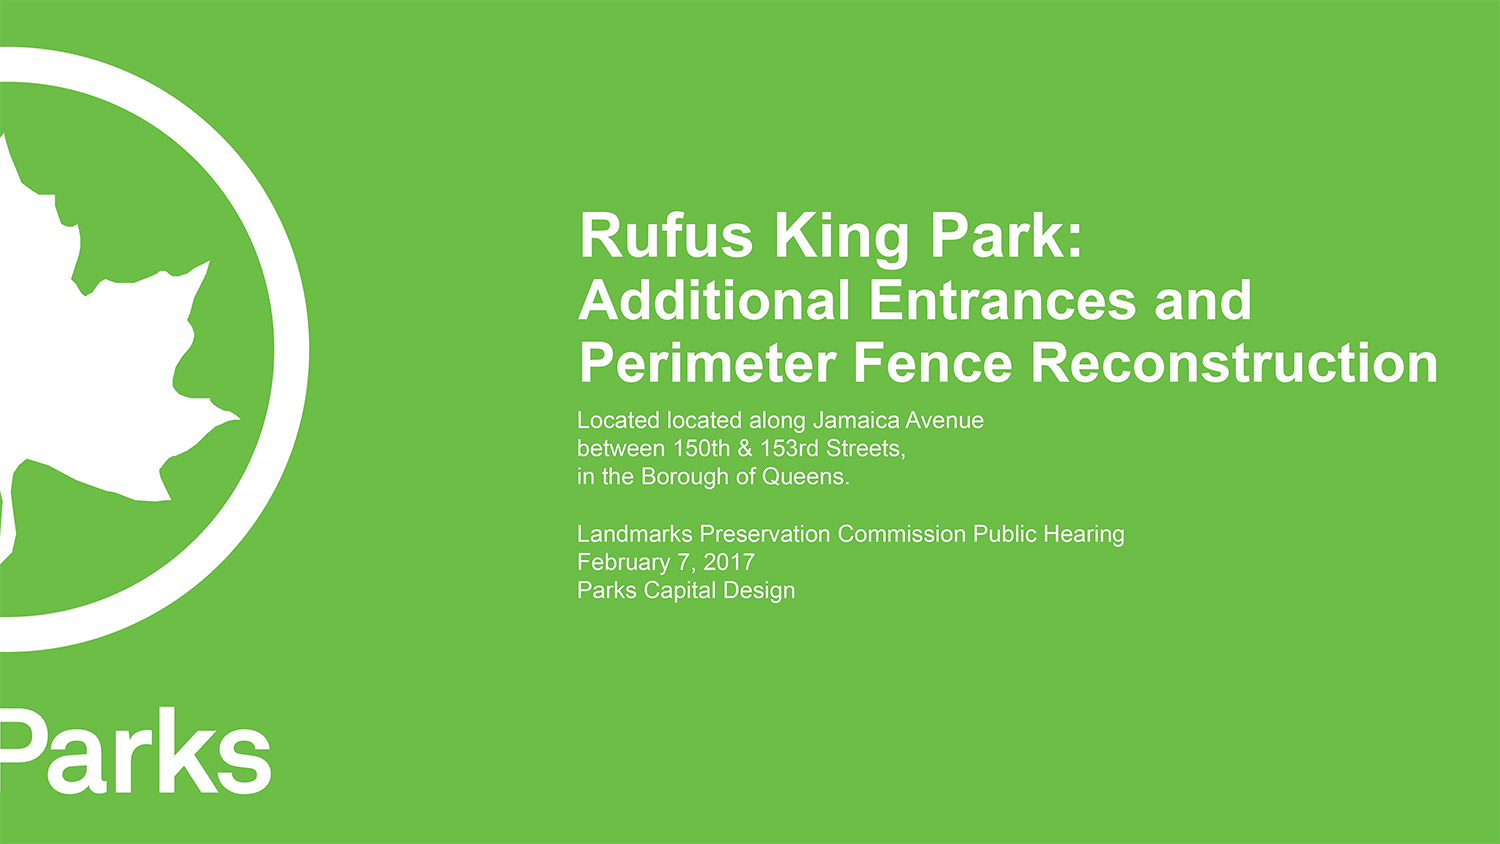 Landmarked Rufus King Park in Queens to Get New Entrances